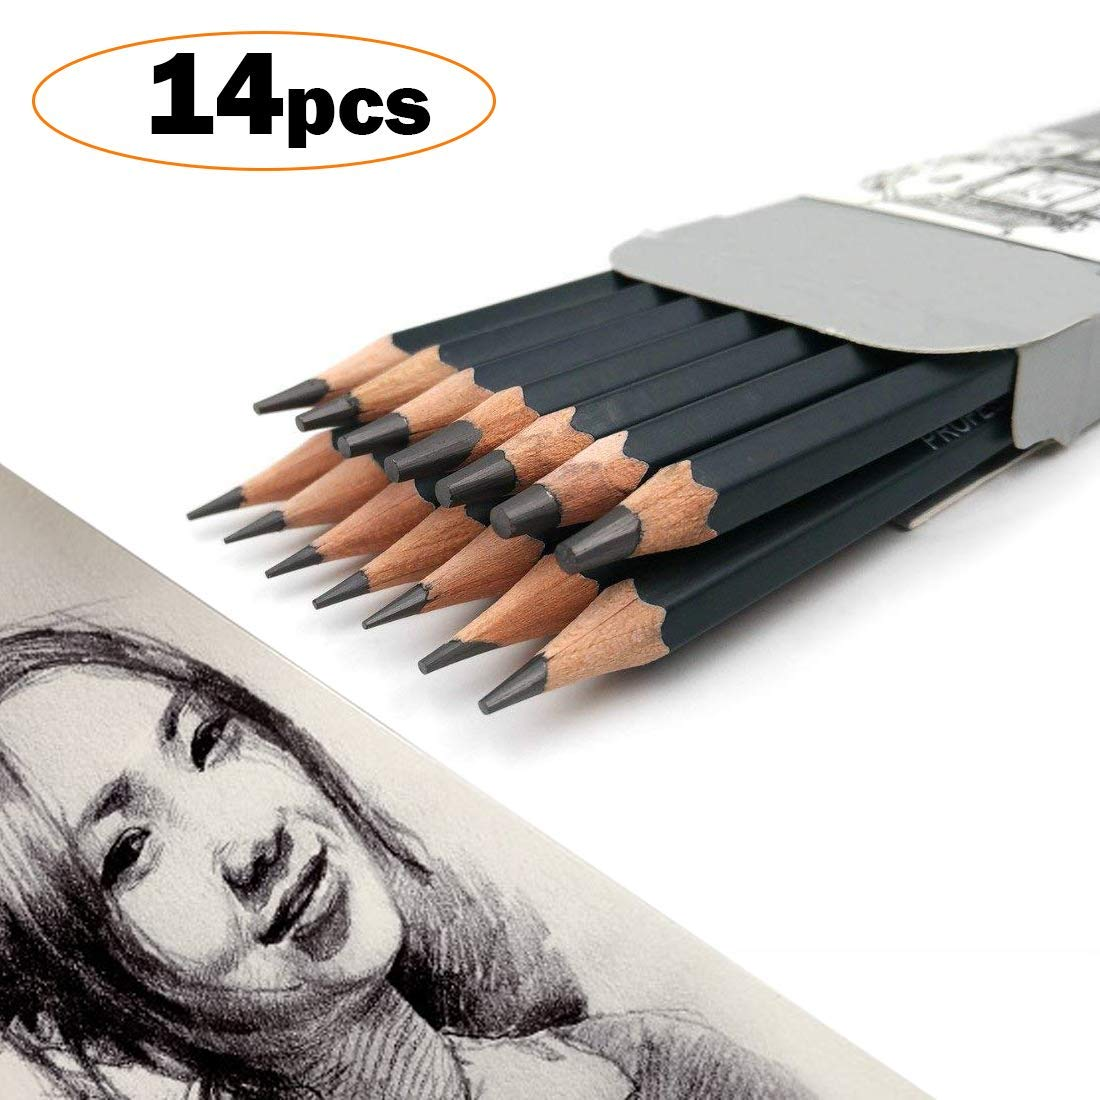 Graphite pencils setprofessional sketch and art pencils best quality 14 pcs set 12b 10b 8b 7b 6b 5b 4b 3b 2b b hb 2h 4h 6h for drawingperfect for